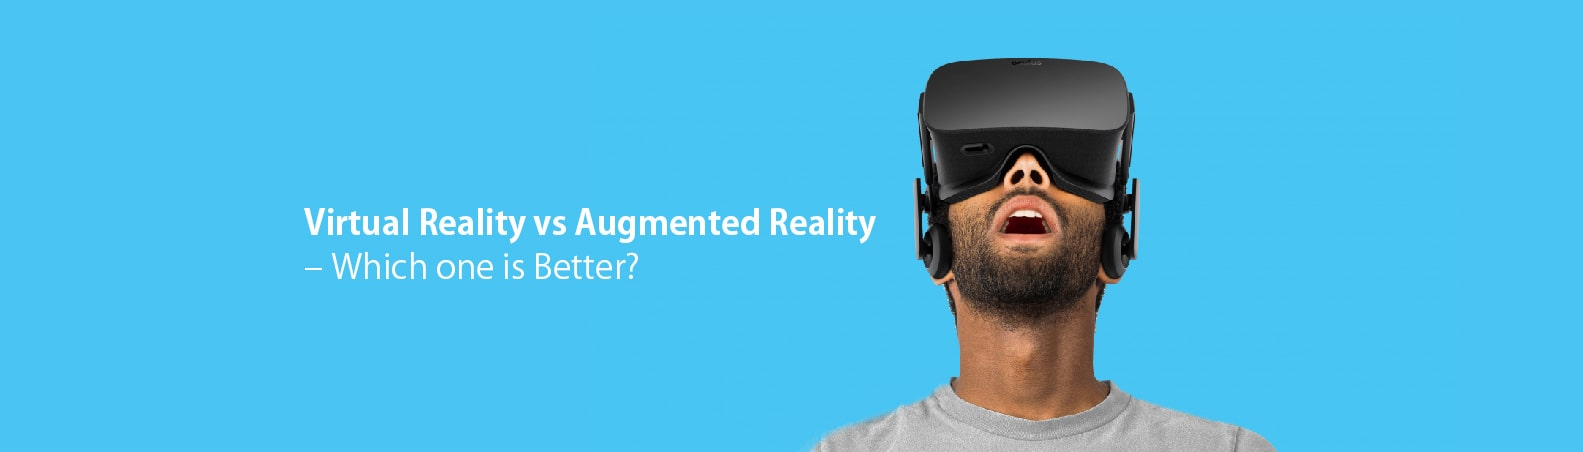 Virtual Reality vs Augmented Reality – Which one is Better?